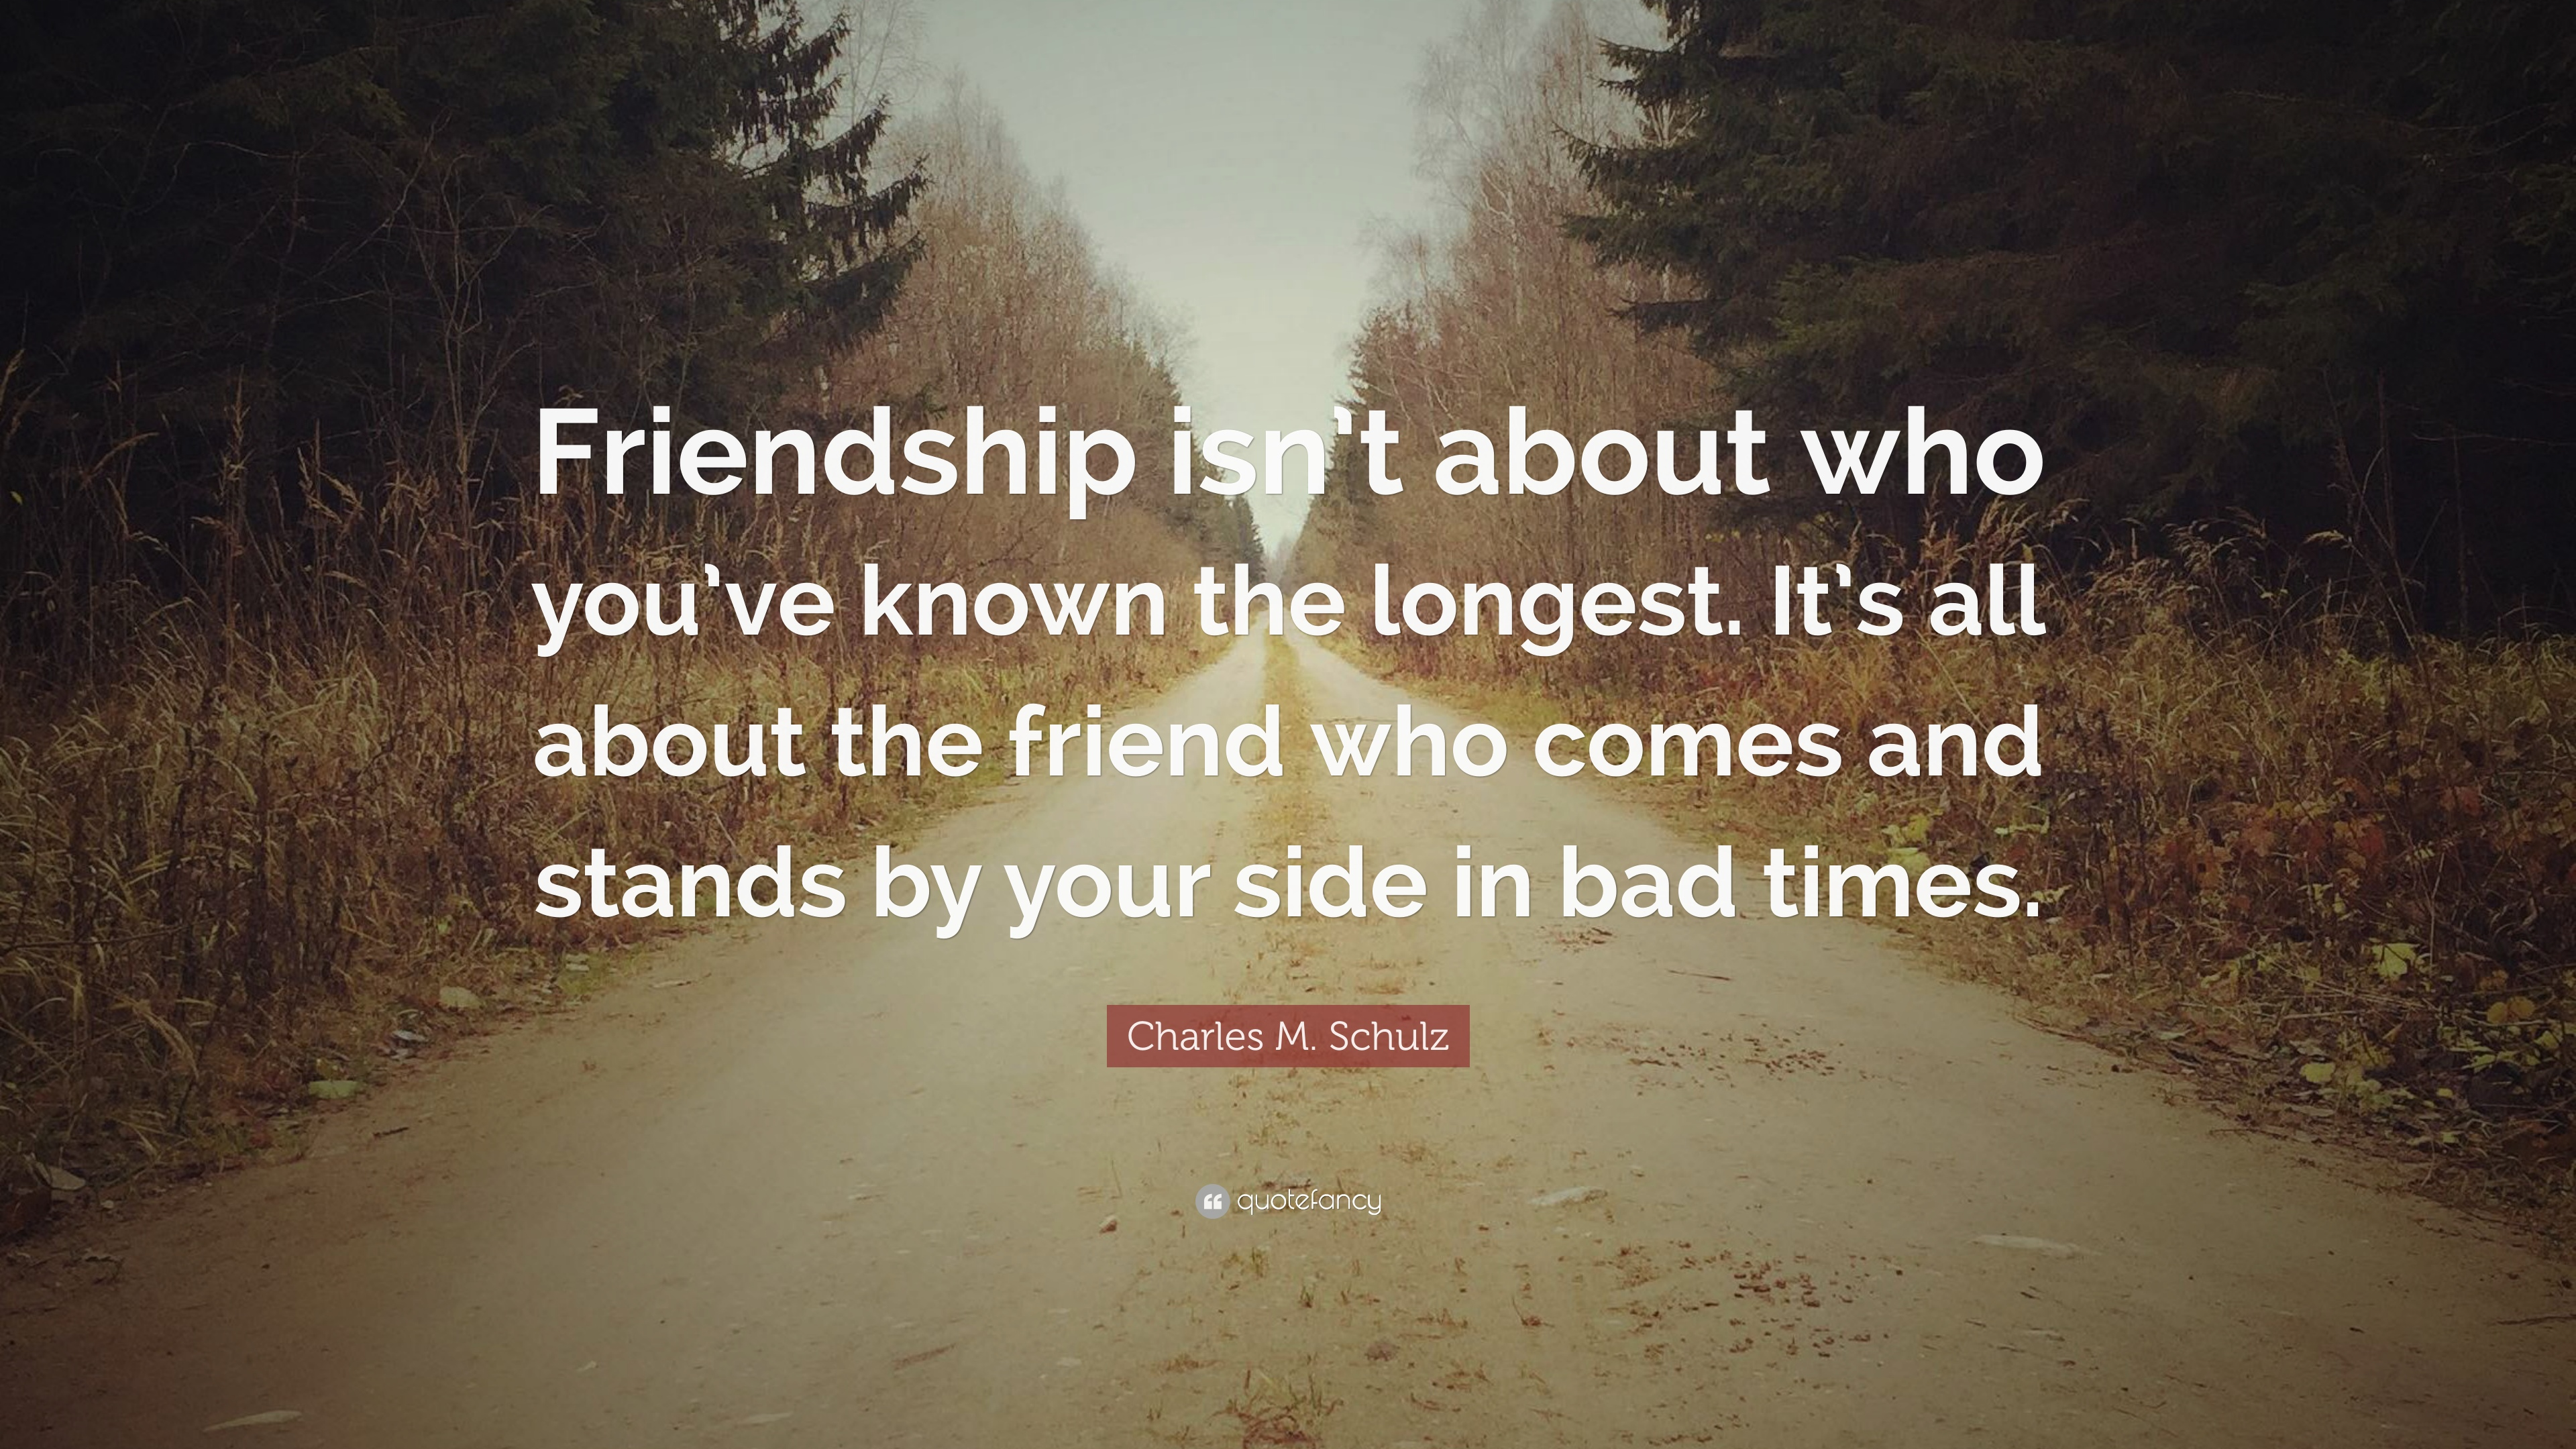 Charles M Schulz Quote Friendship Isnt About Who Youve Known